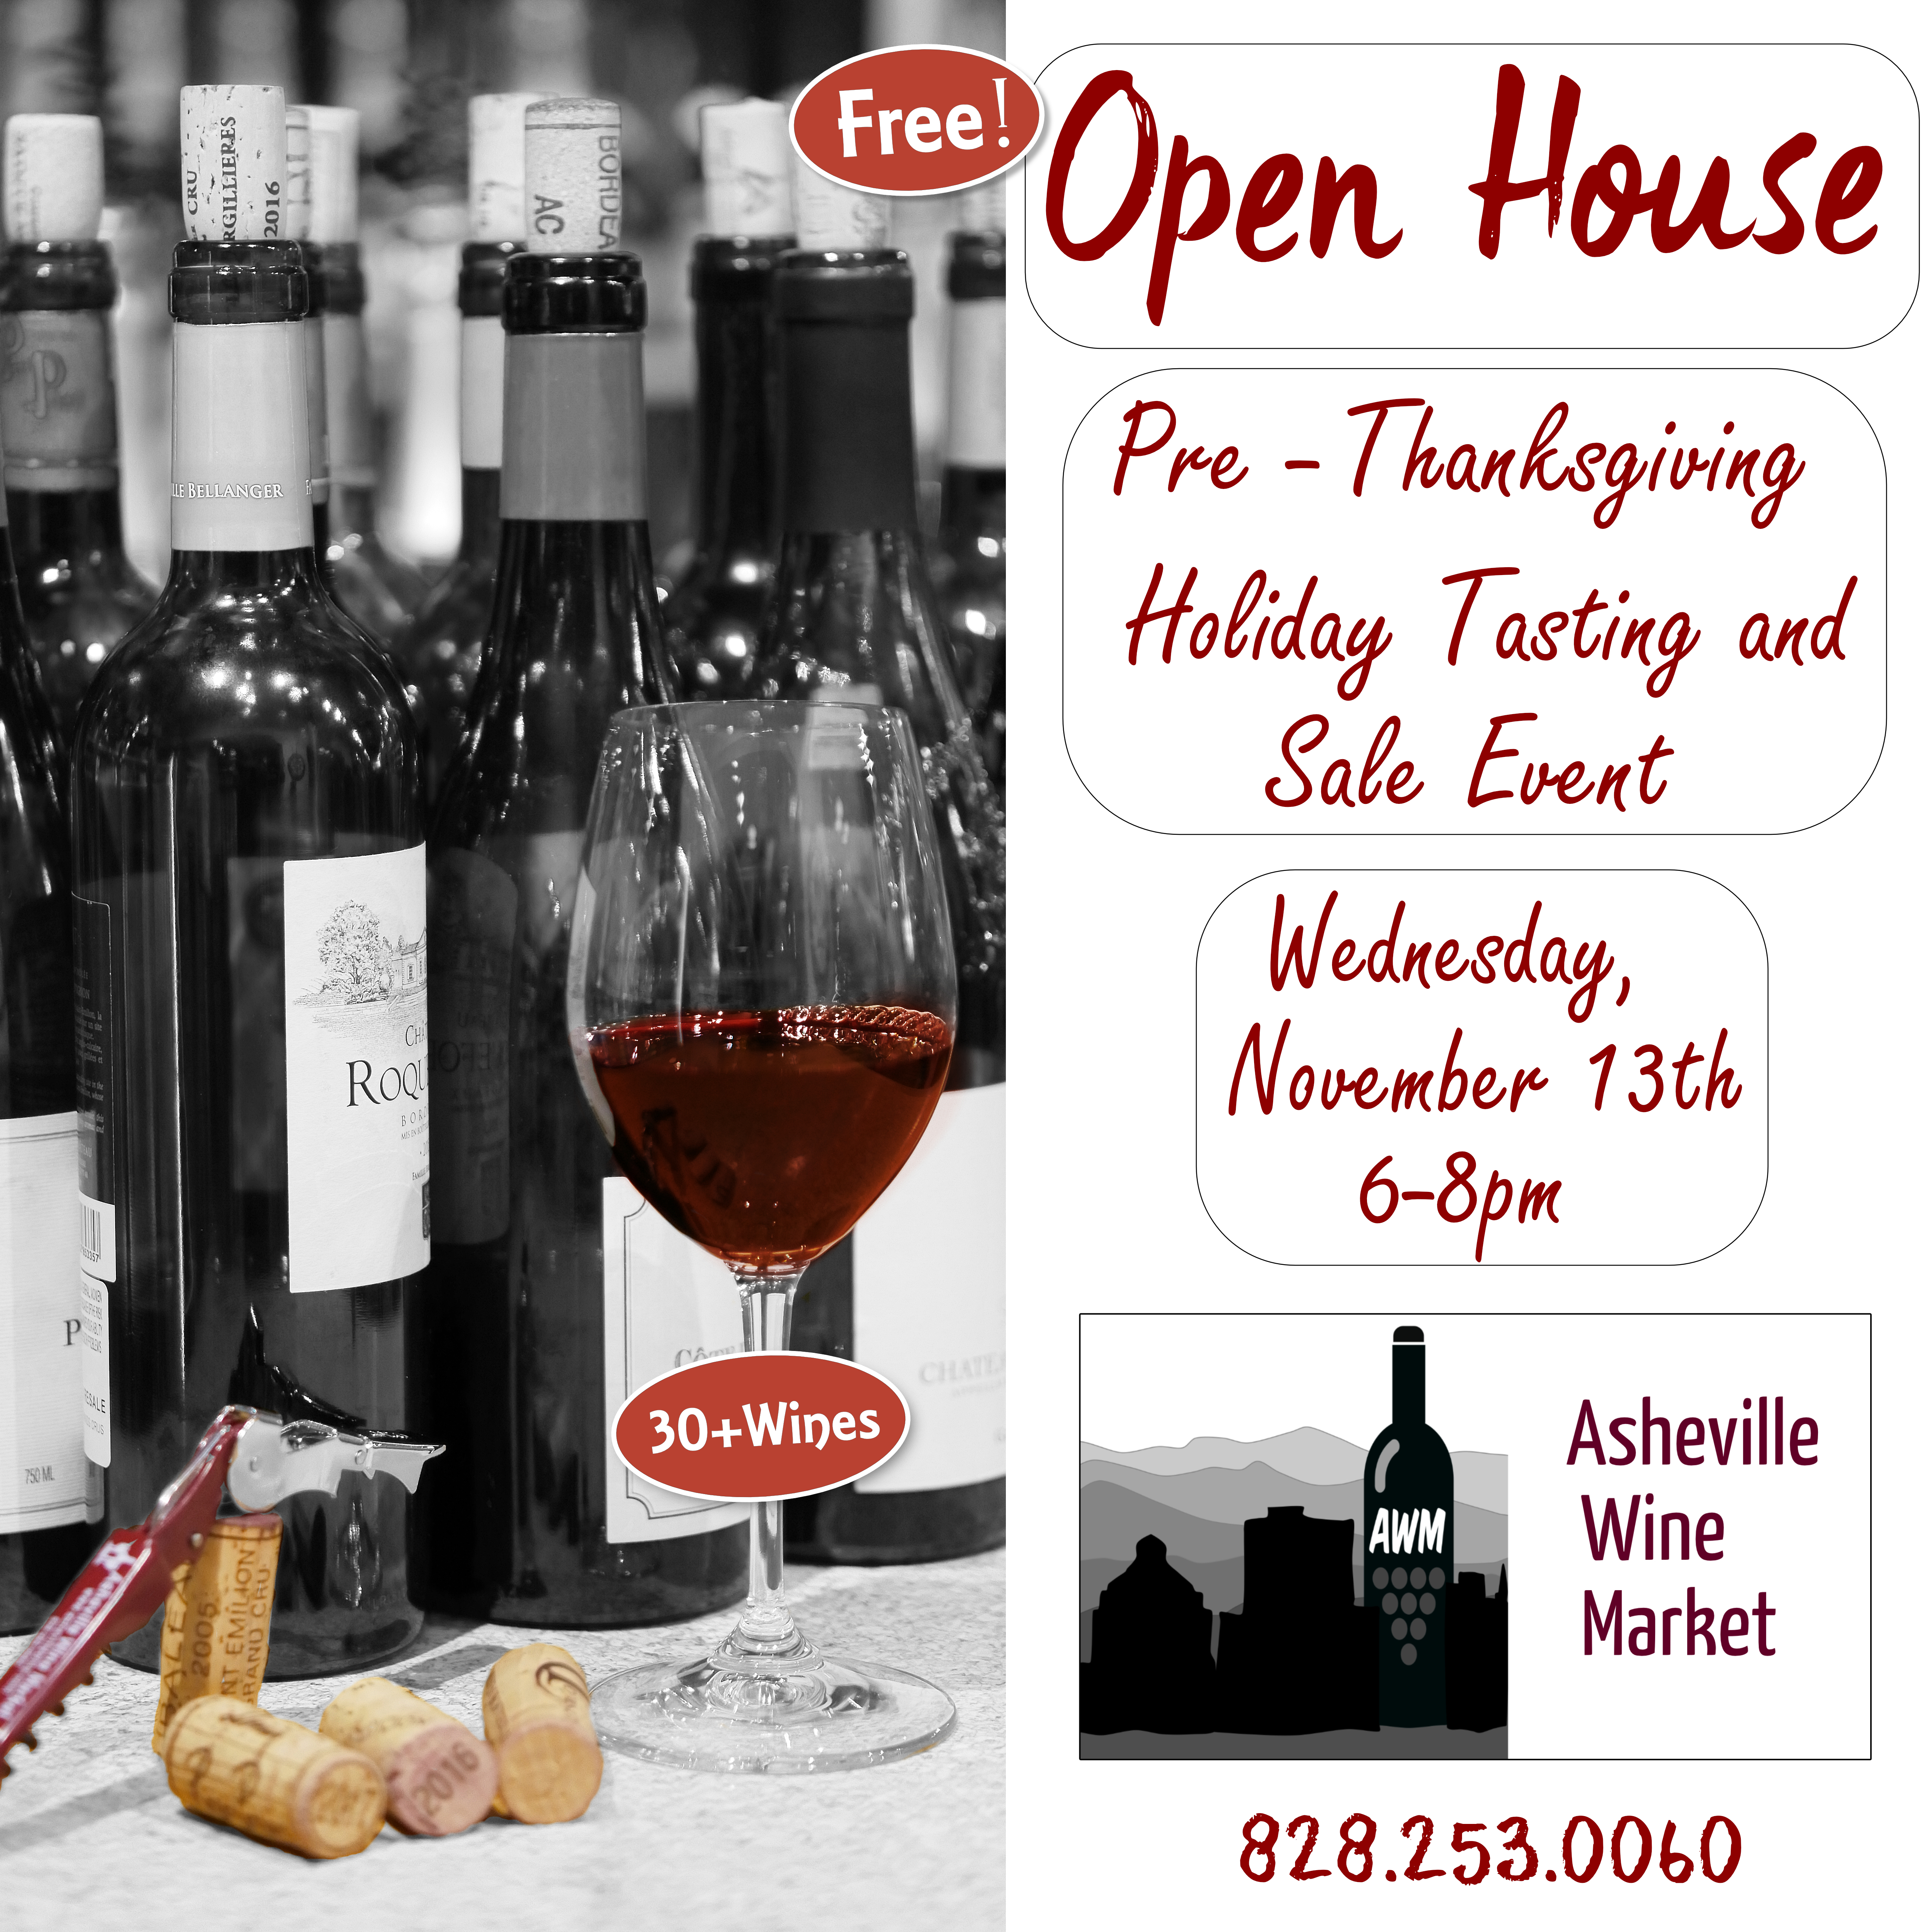 Don't miss our annual Free Thanksgiving Open House Sale Tasting.